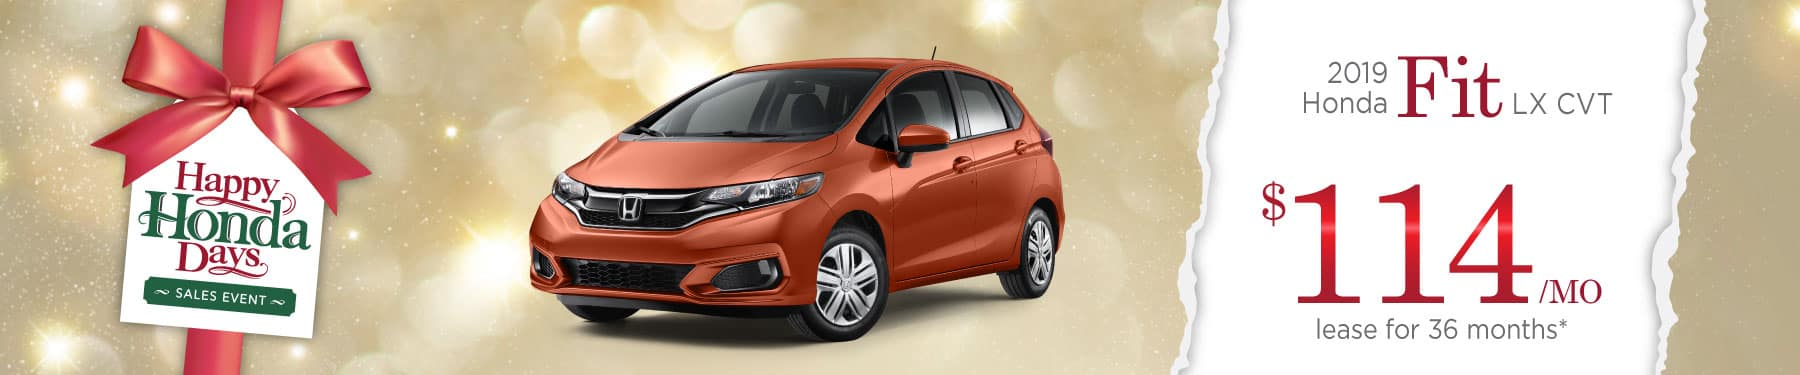 Header Photo of the 2019 Honda Fit